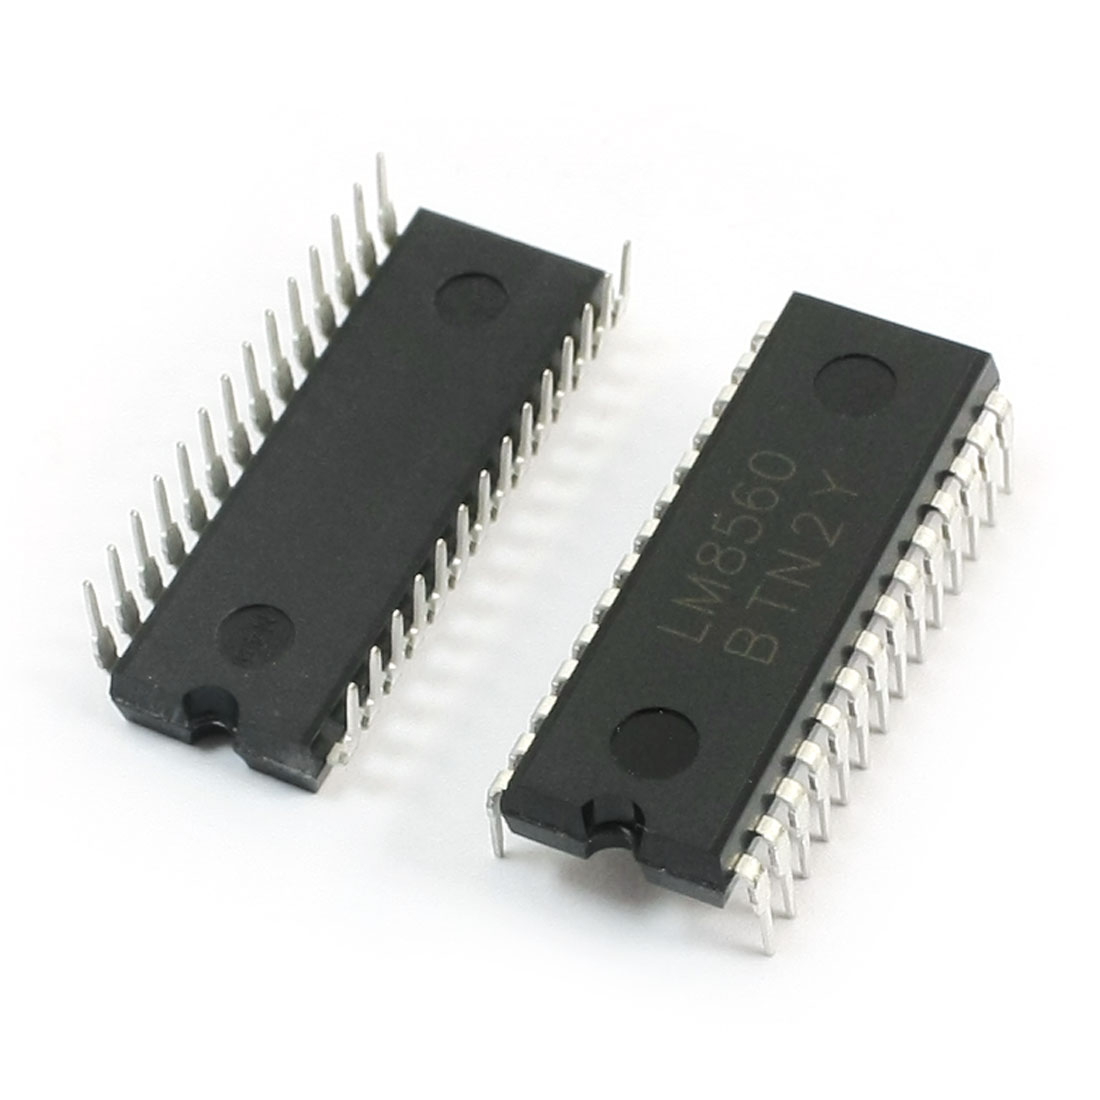 2Pcs LM8560 28Pin Dual Row Through Hole DIP Mounting Digital Alarm Clock IC Integrated Circuit Chip